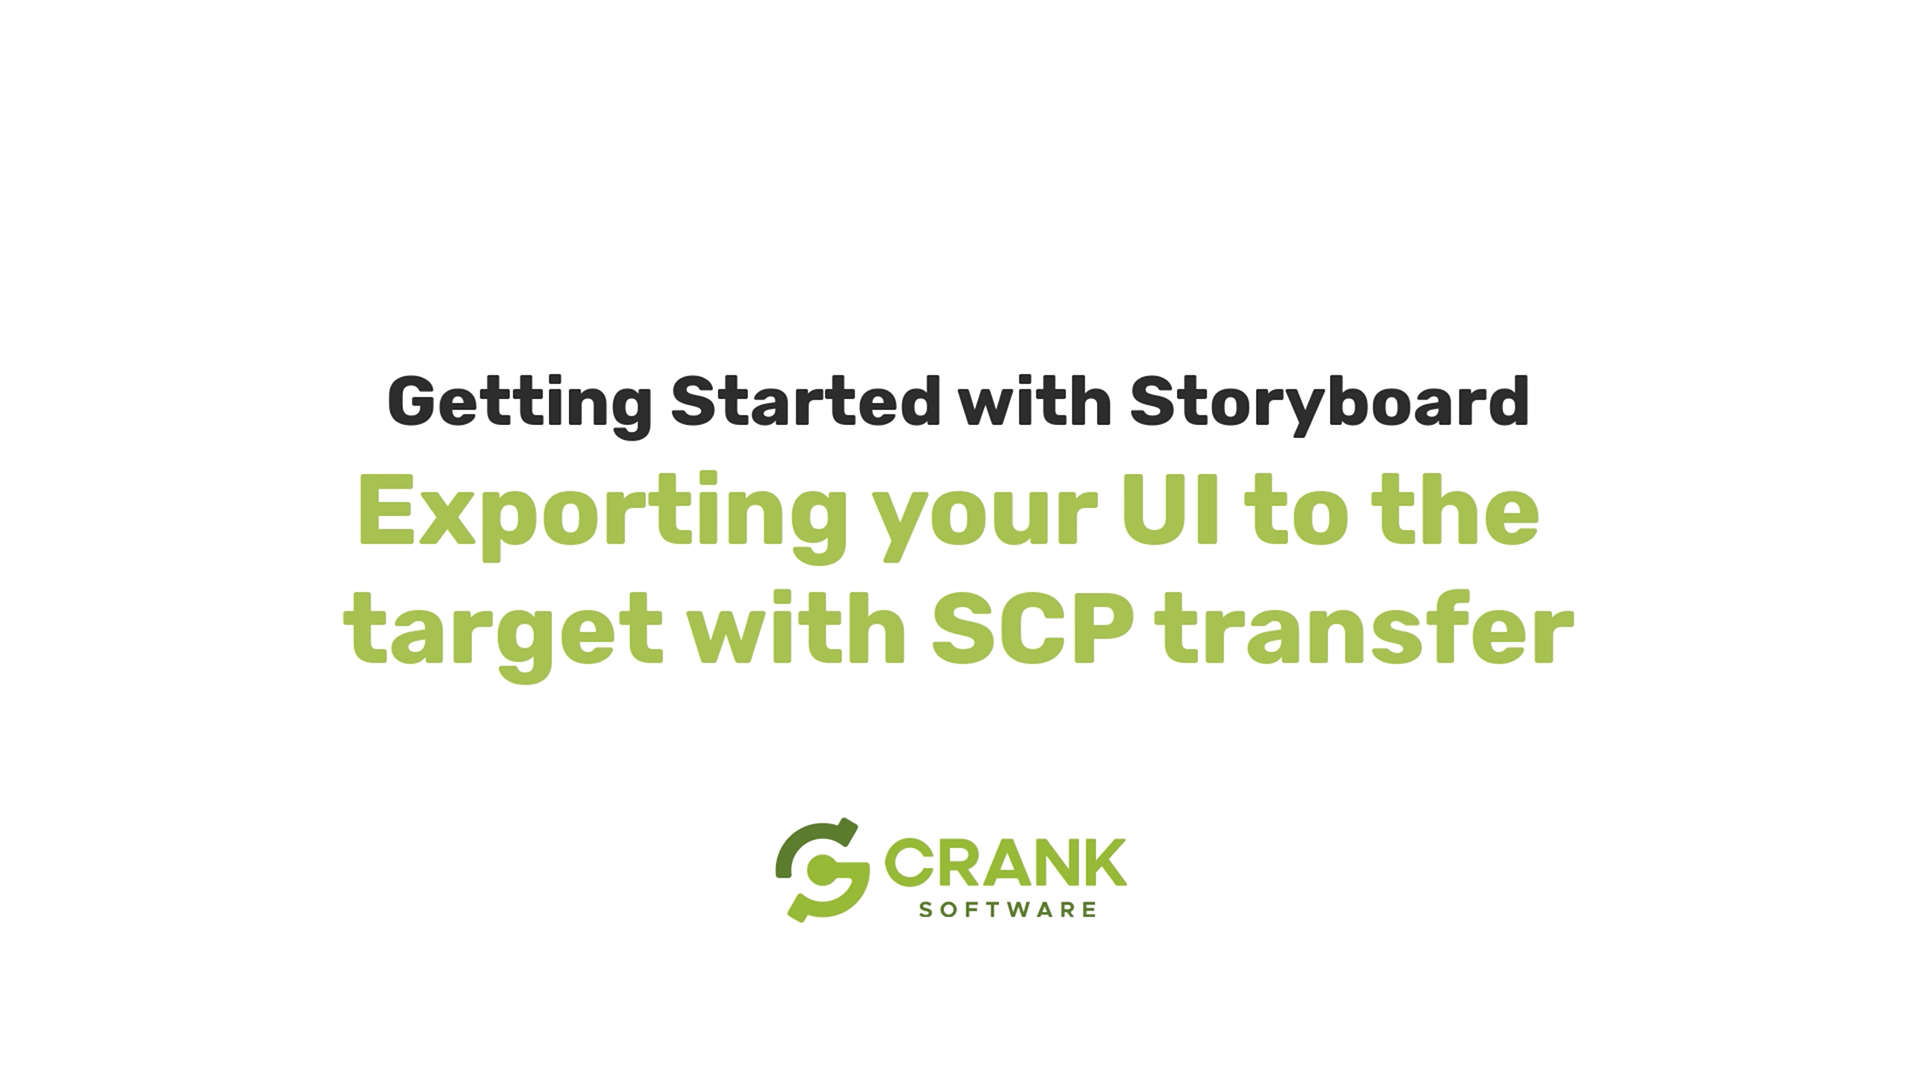 Crank-Storyboard-Exporting-your-UI-to-the-target-with-SCP-transfer